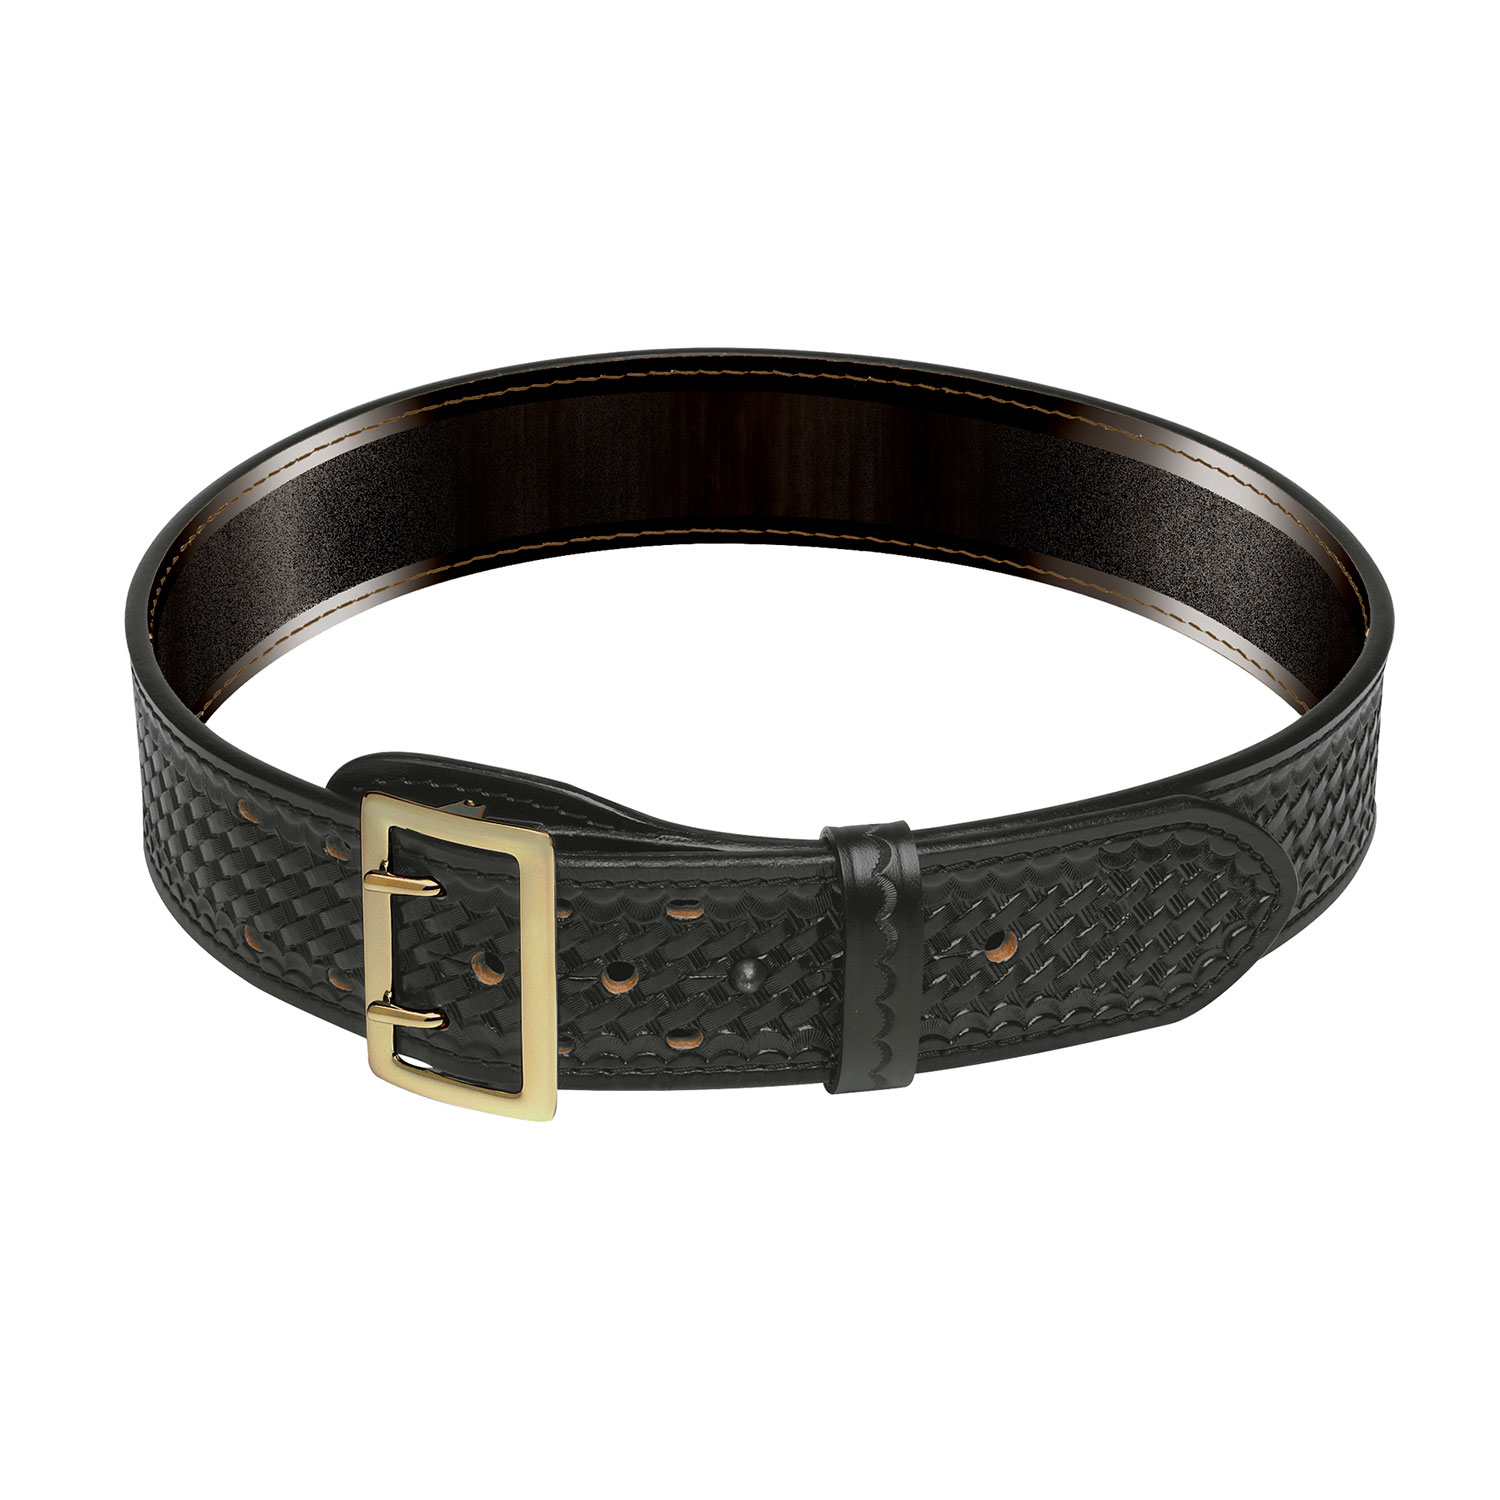 LawPro Leather Sam Browne Belt